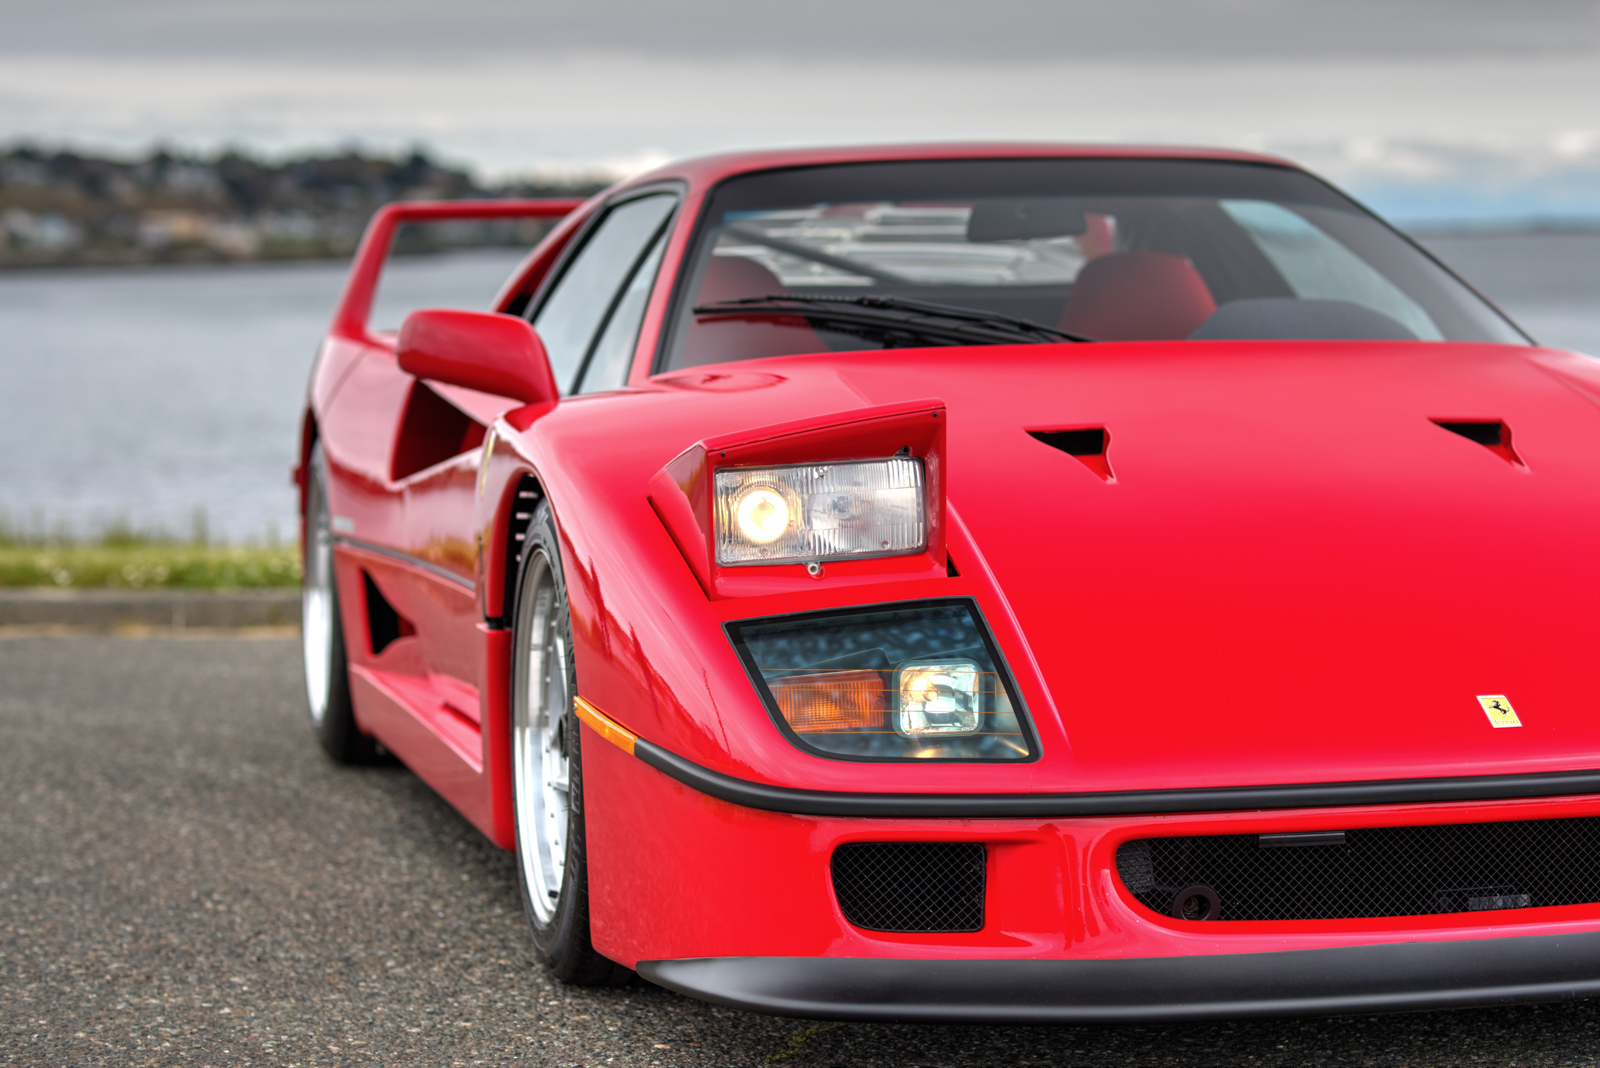 1990 Ferrari F40 for sale